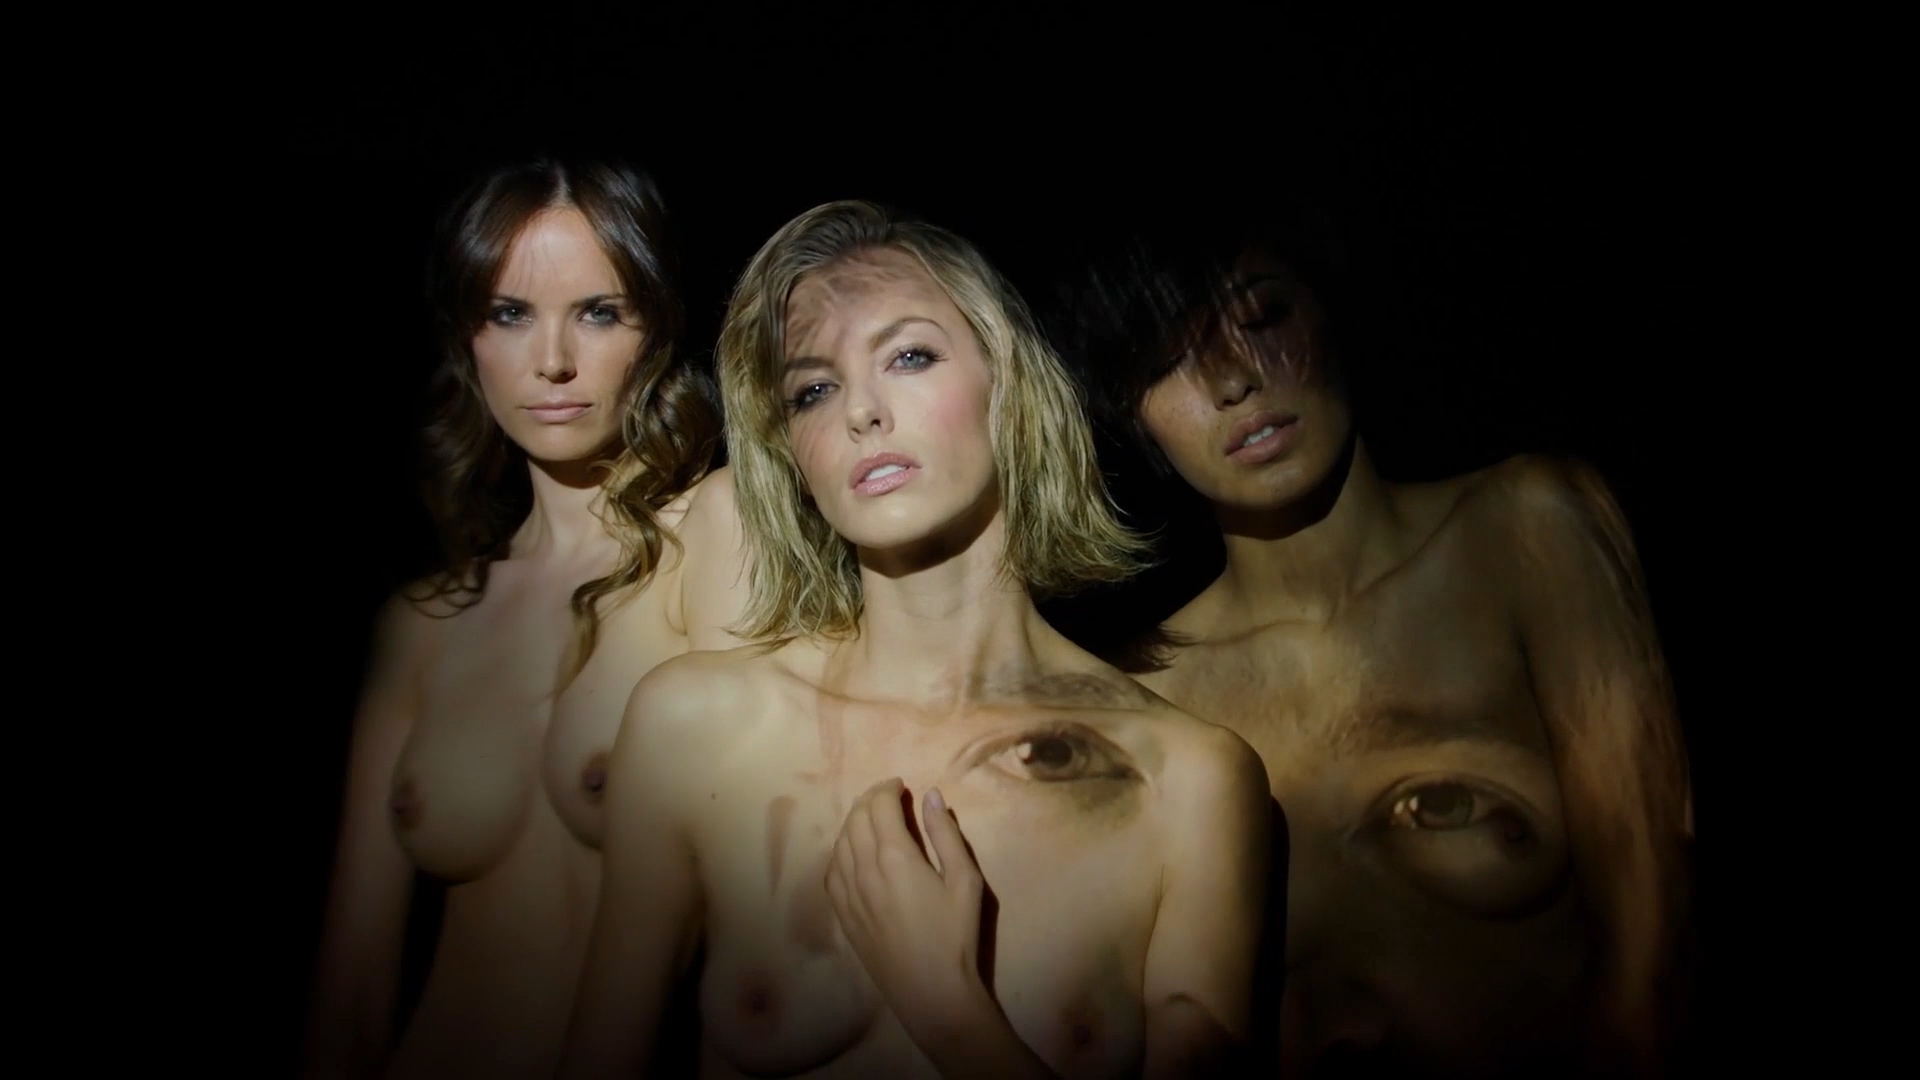 Felicia Porter nude topless and Laura Shields nude - Tunnel Vision (Explicit) - Justin Timberlake hd1080p (2)